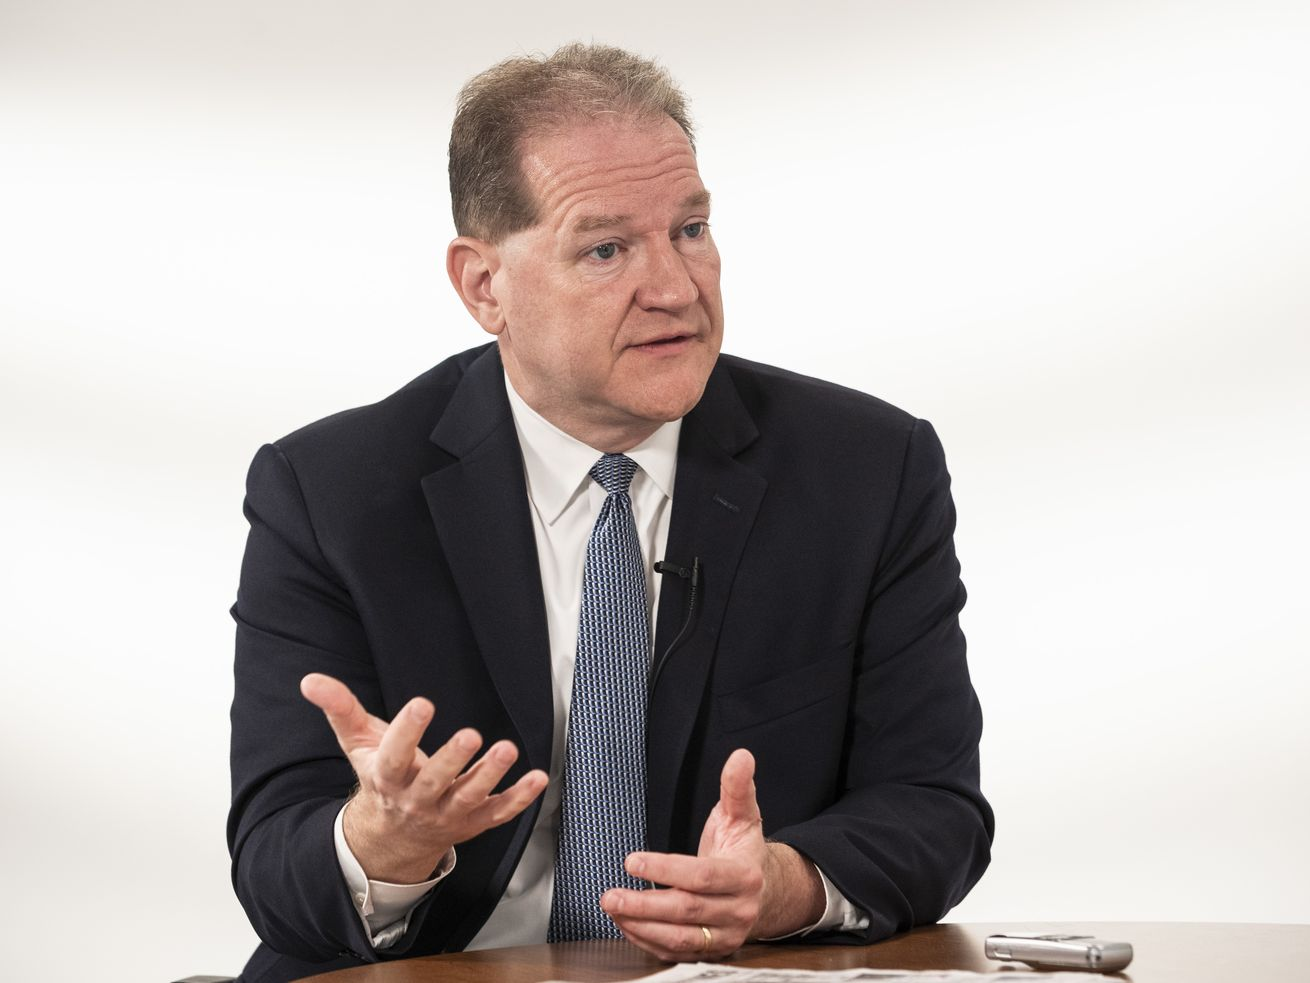 Fran Spielman interviews Chicagoland Chamber of Commerce president and CEO Jack Lavin